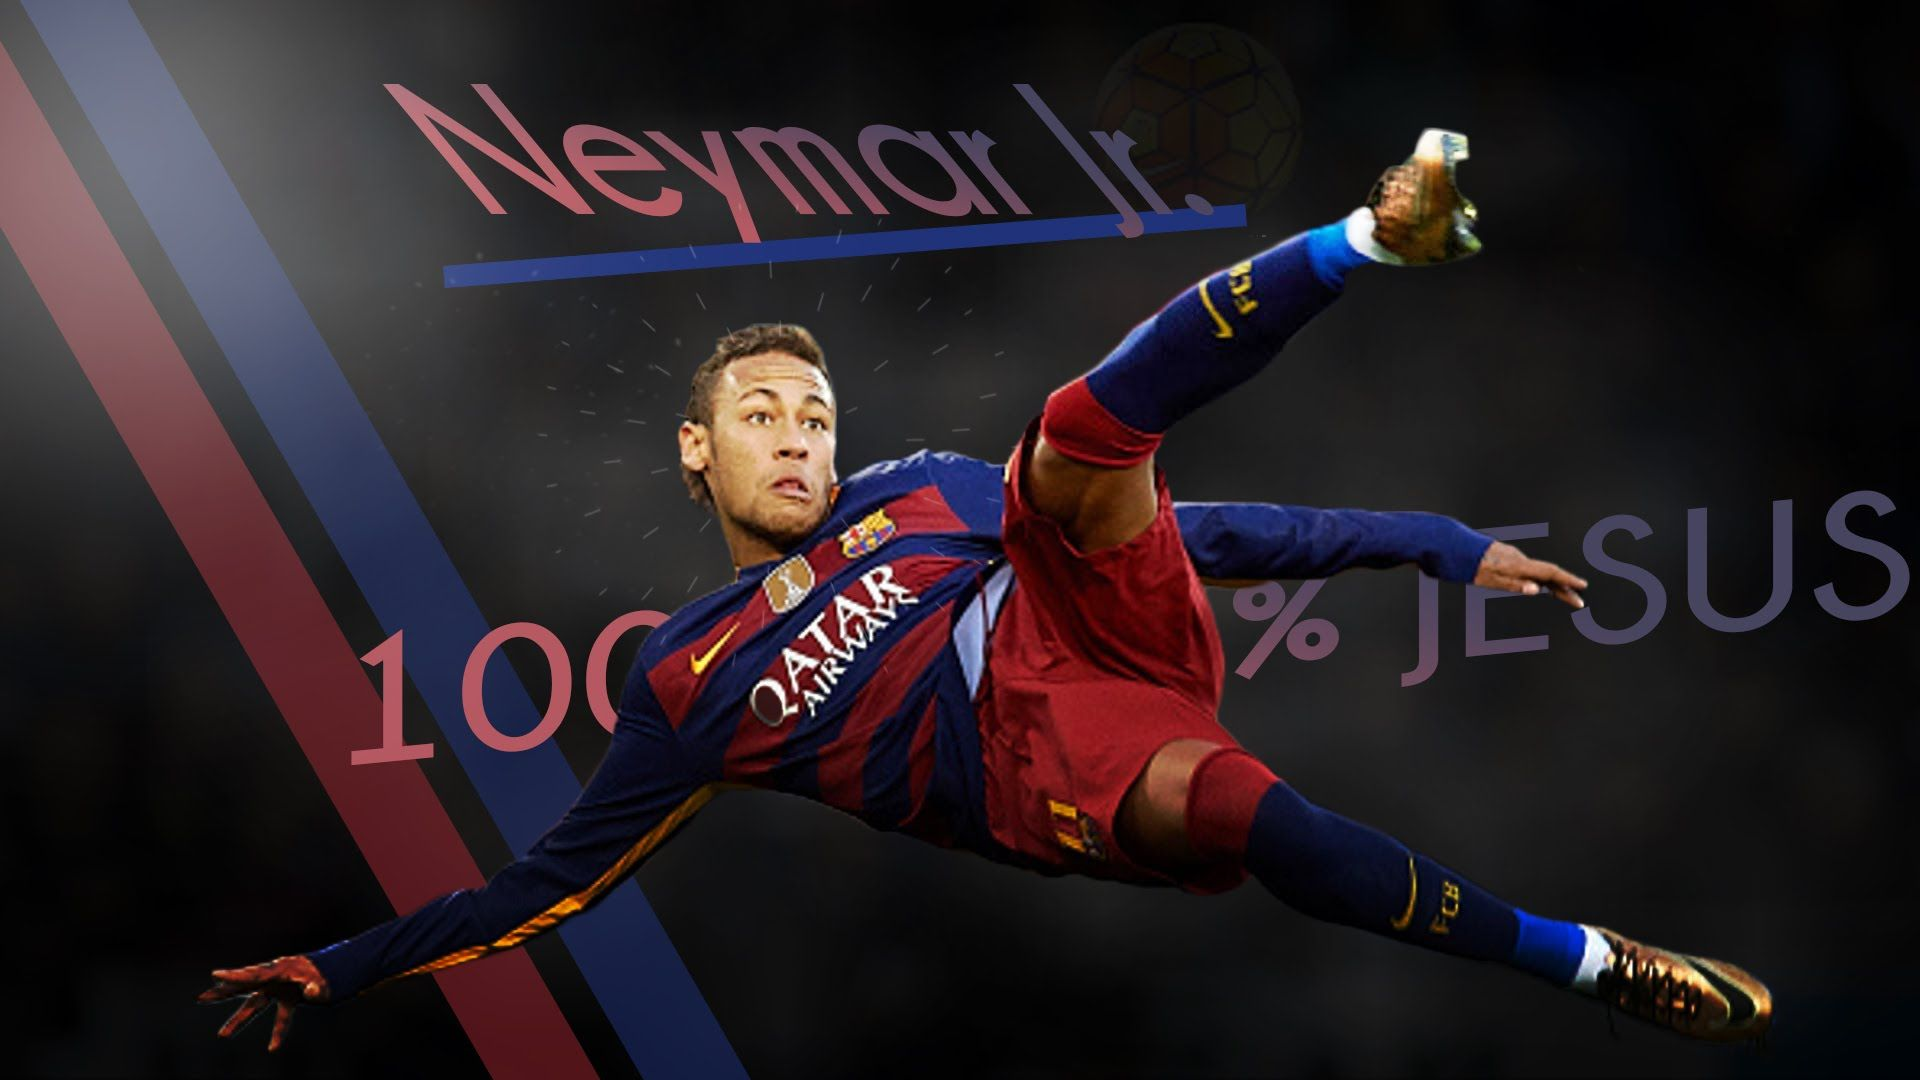 Hd wallpaper neymar - Neymar Jr Hd Images 3 Whb Neymarjrhdimages Neymarjr Neymar Football Soccer